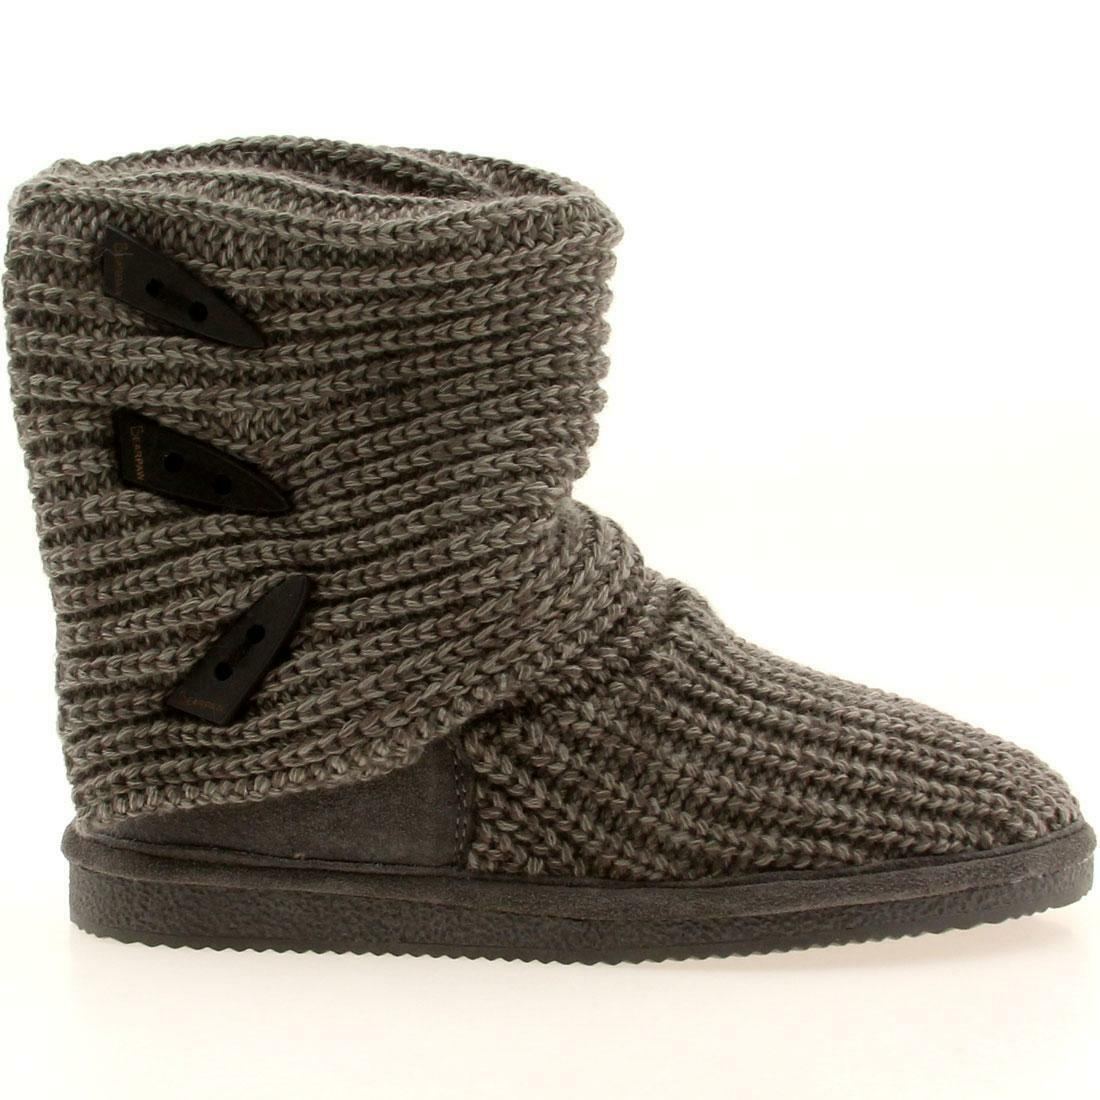 79.99 Bearpaw Damens Knit Tall Boot (gray) (gray) (gray) 658WGRY 41ef34